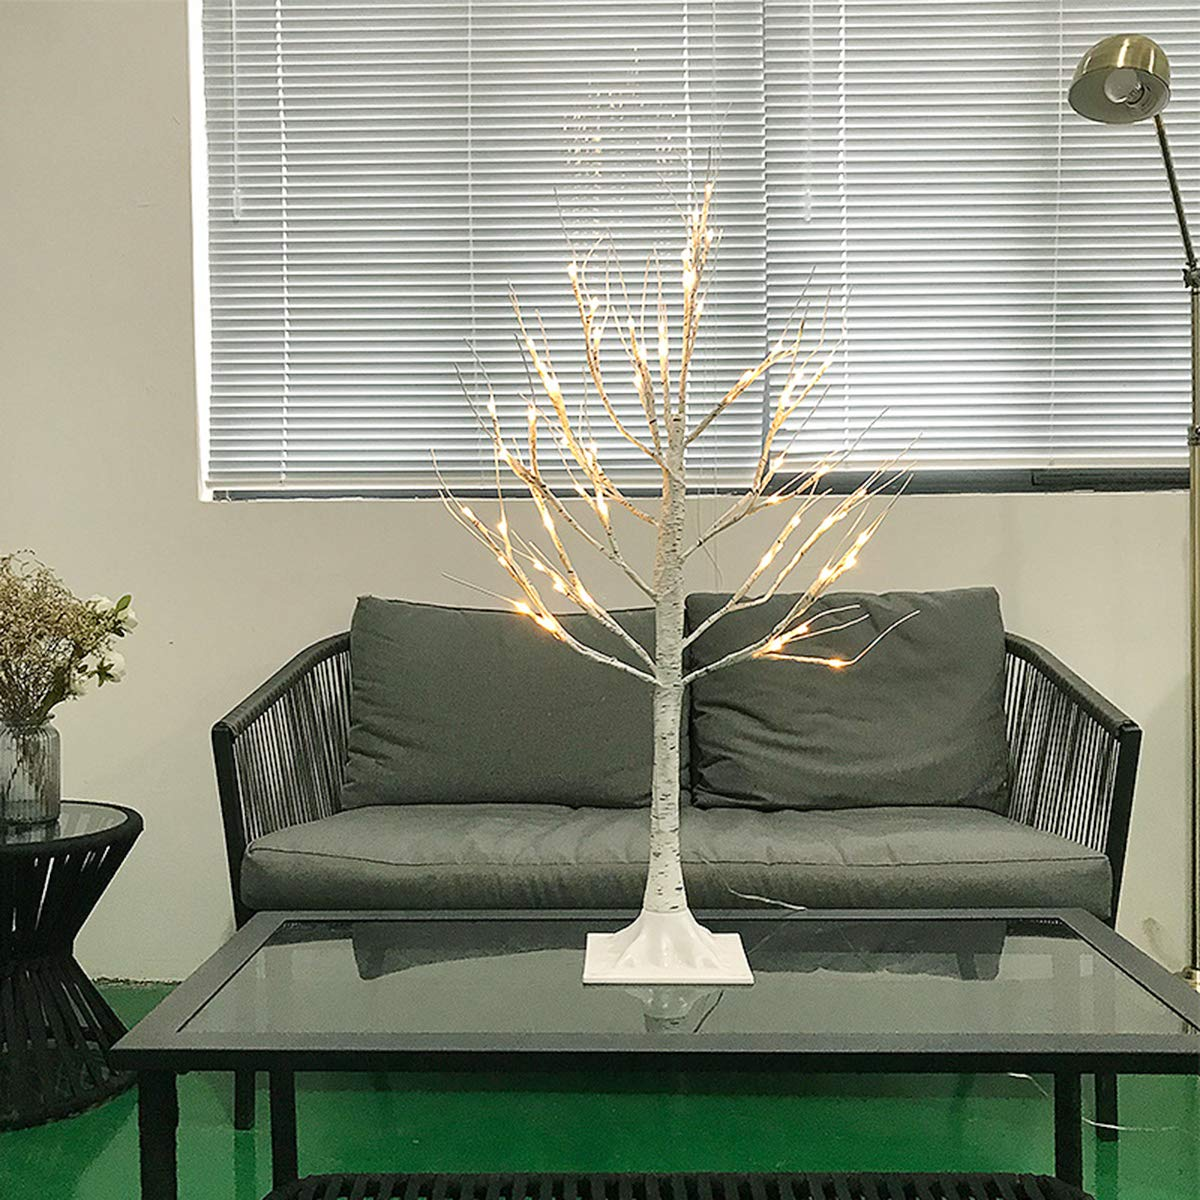 1PC 90CM 60 LEDs USB Interface Warm White Flexible Birch Tree Lights for Party Home Wedding Decoration Festival